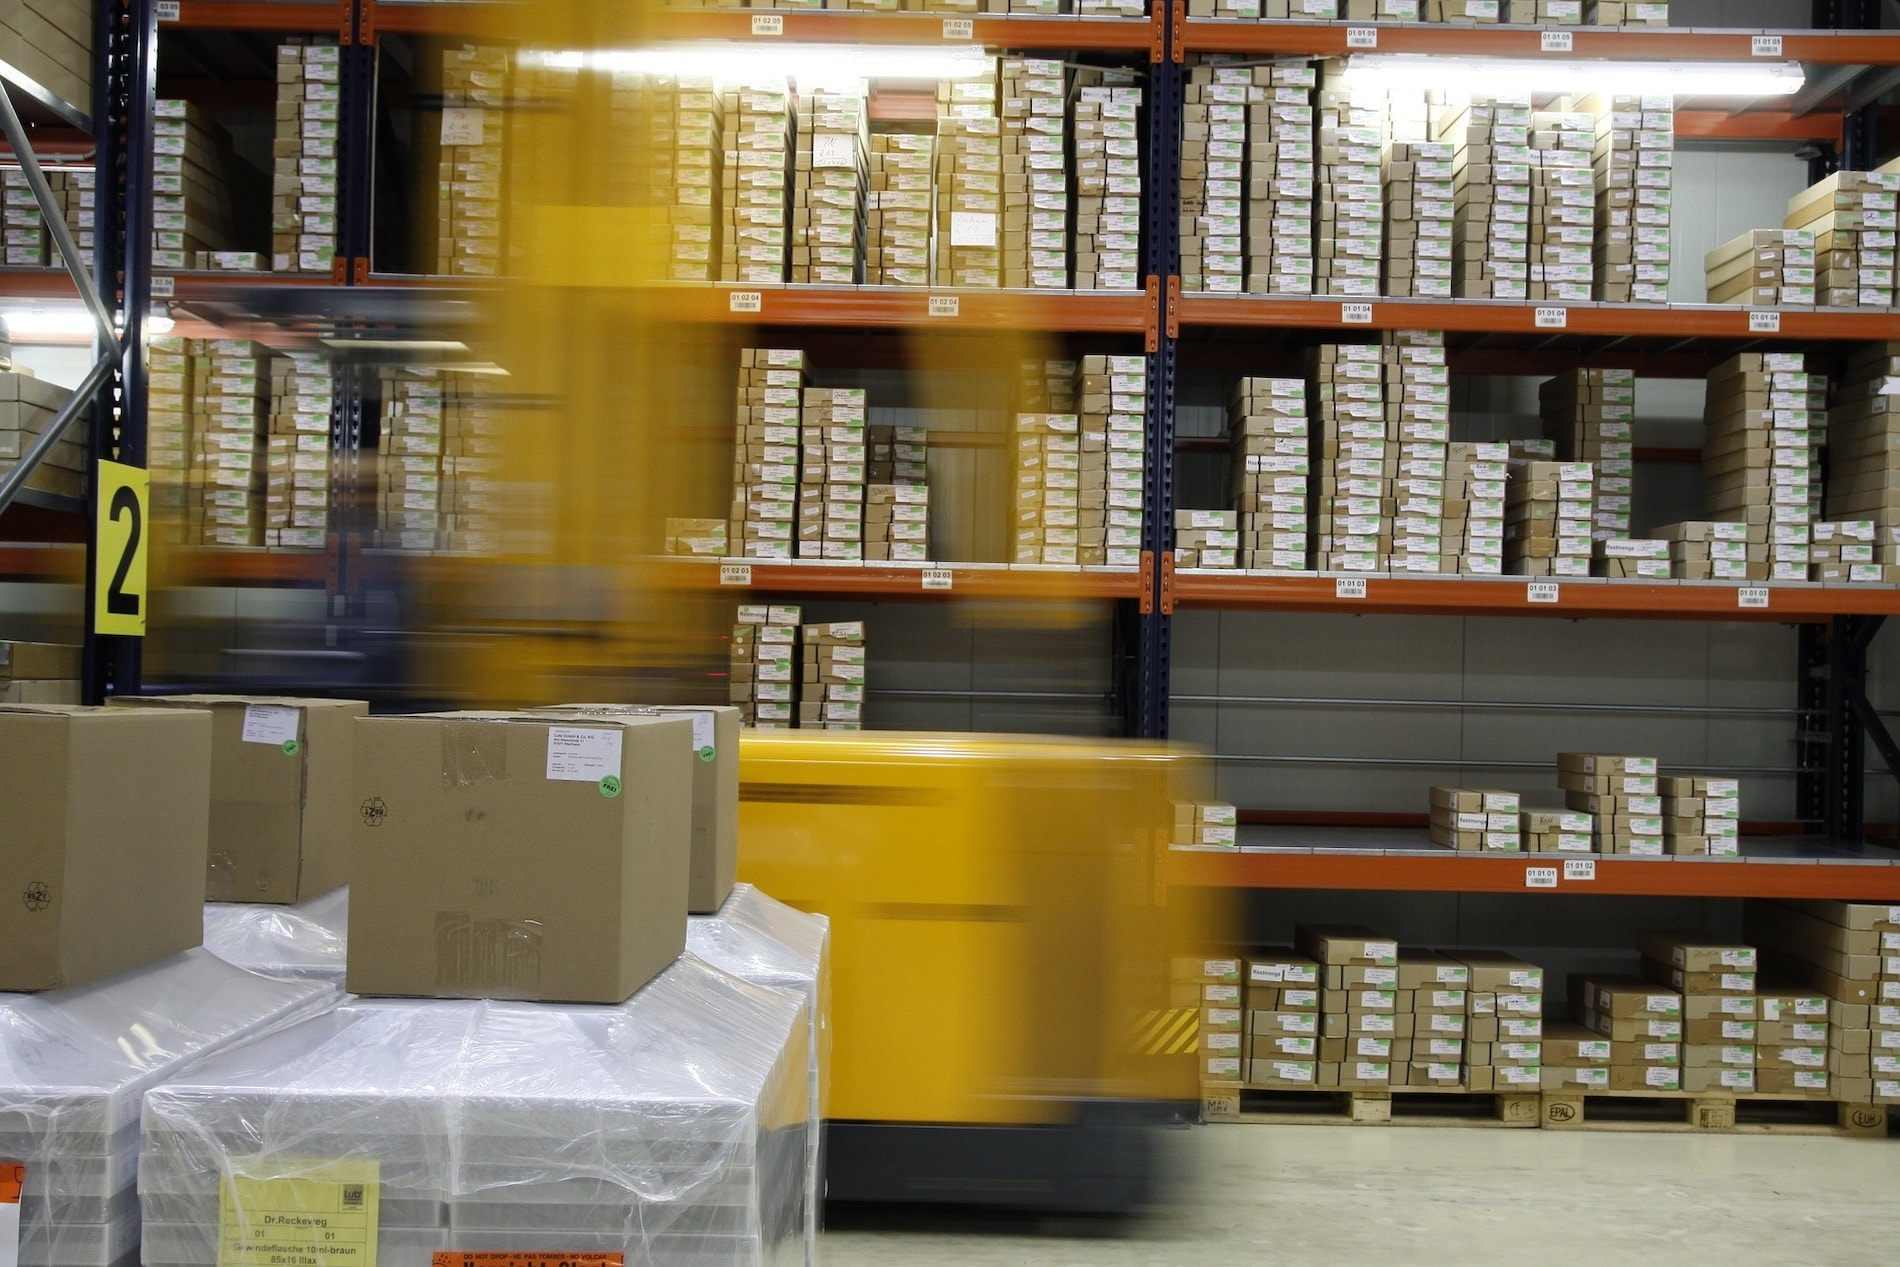 Warehouse with boxes piled high